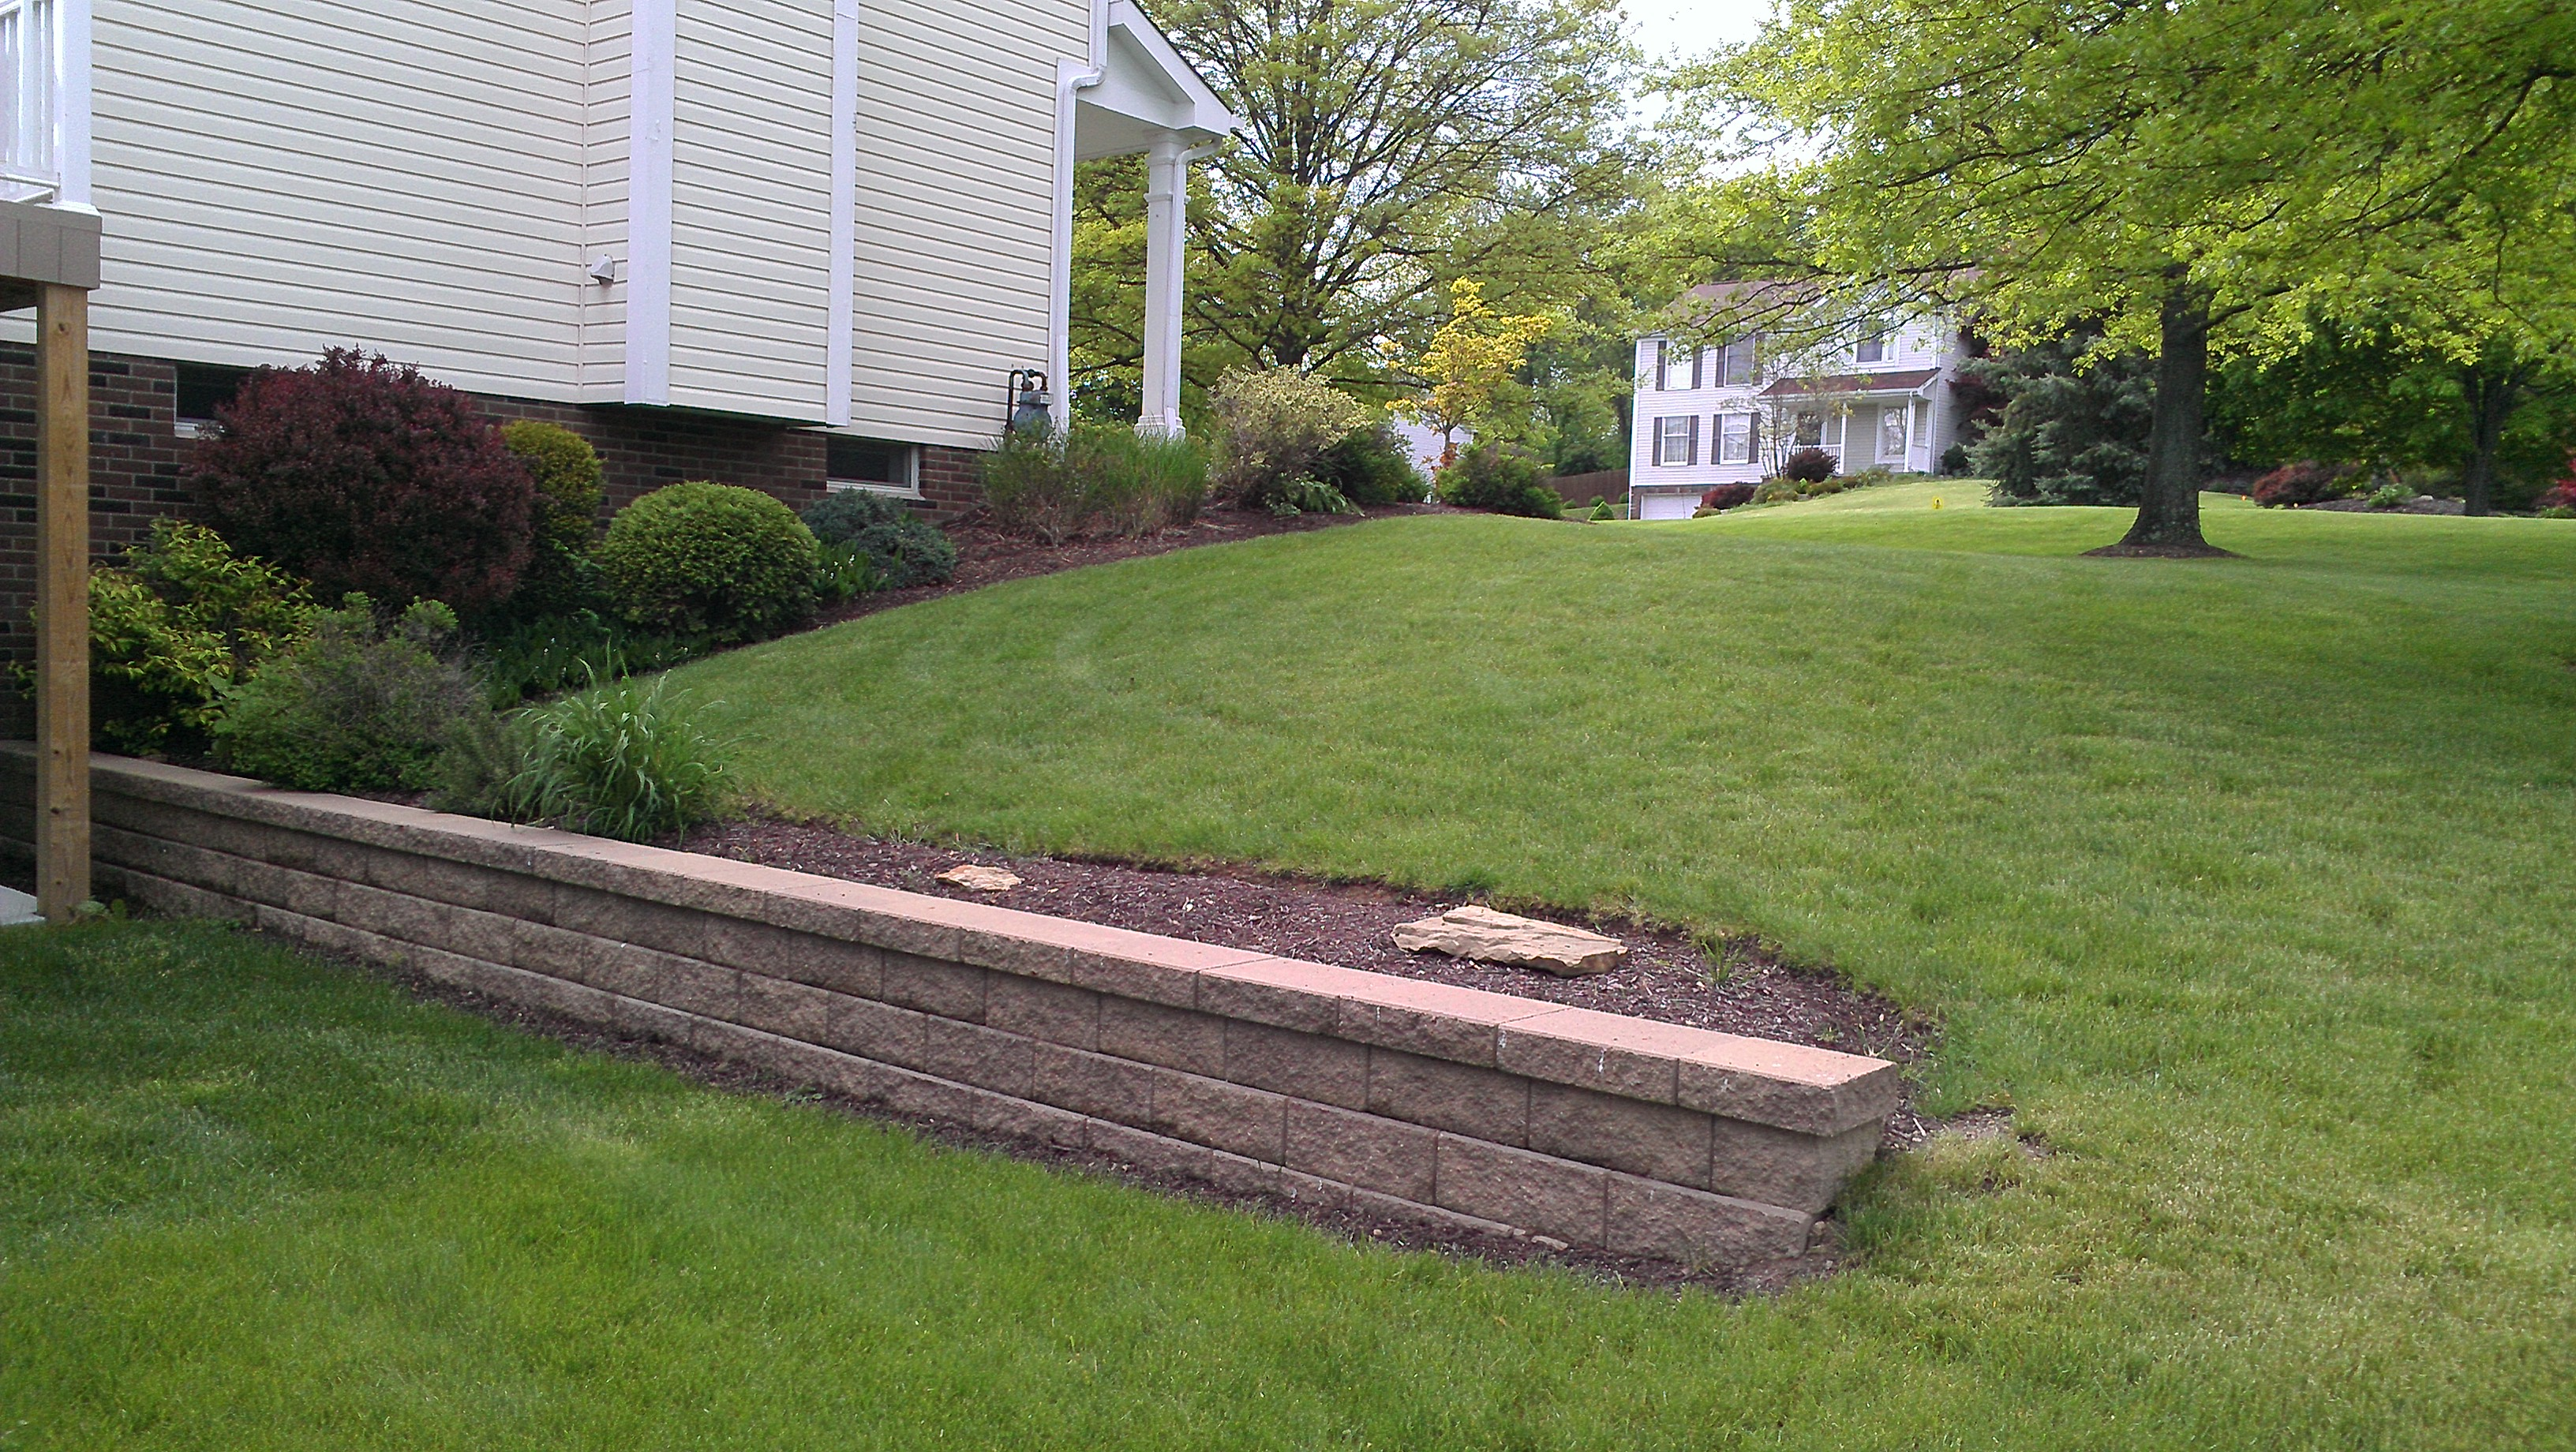 Retaining wall Upper St. Clair